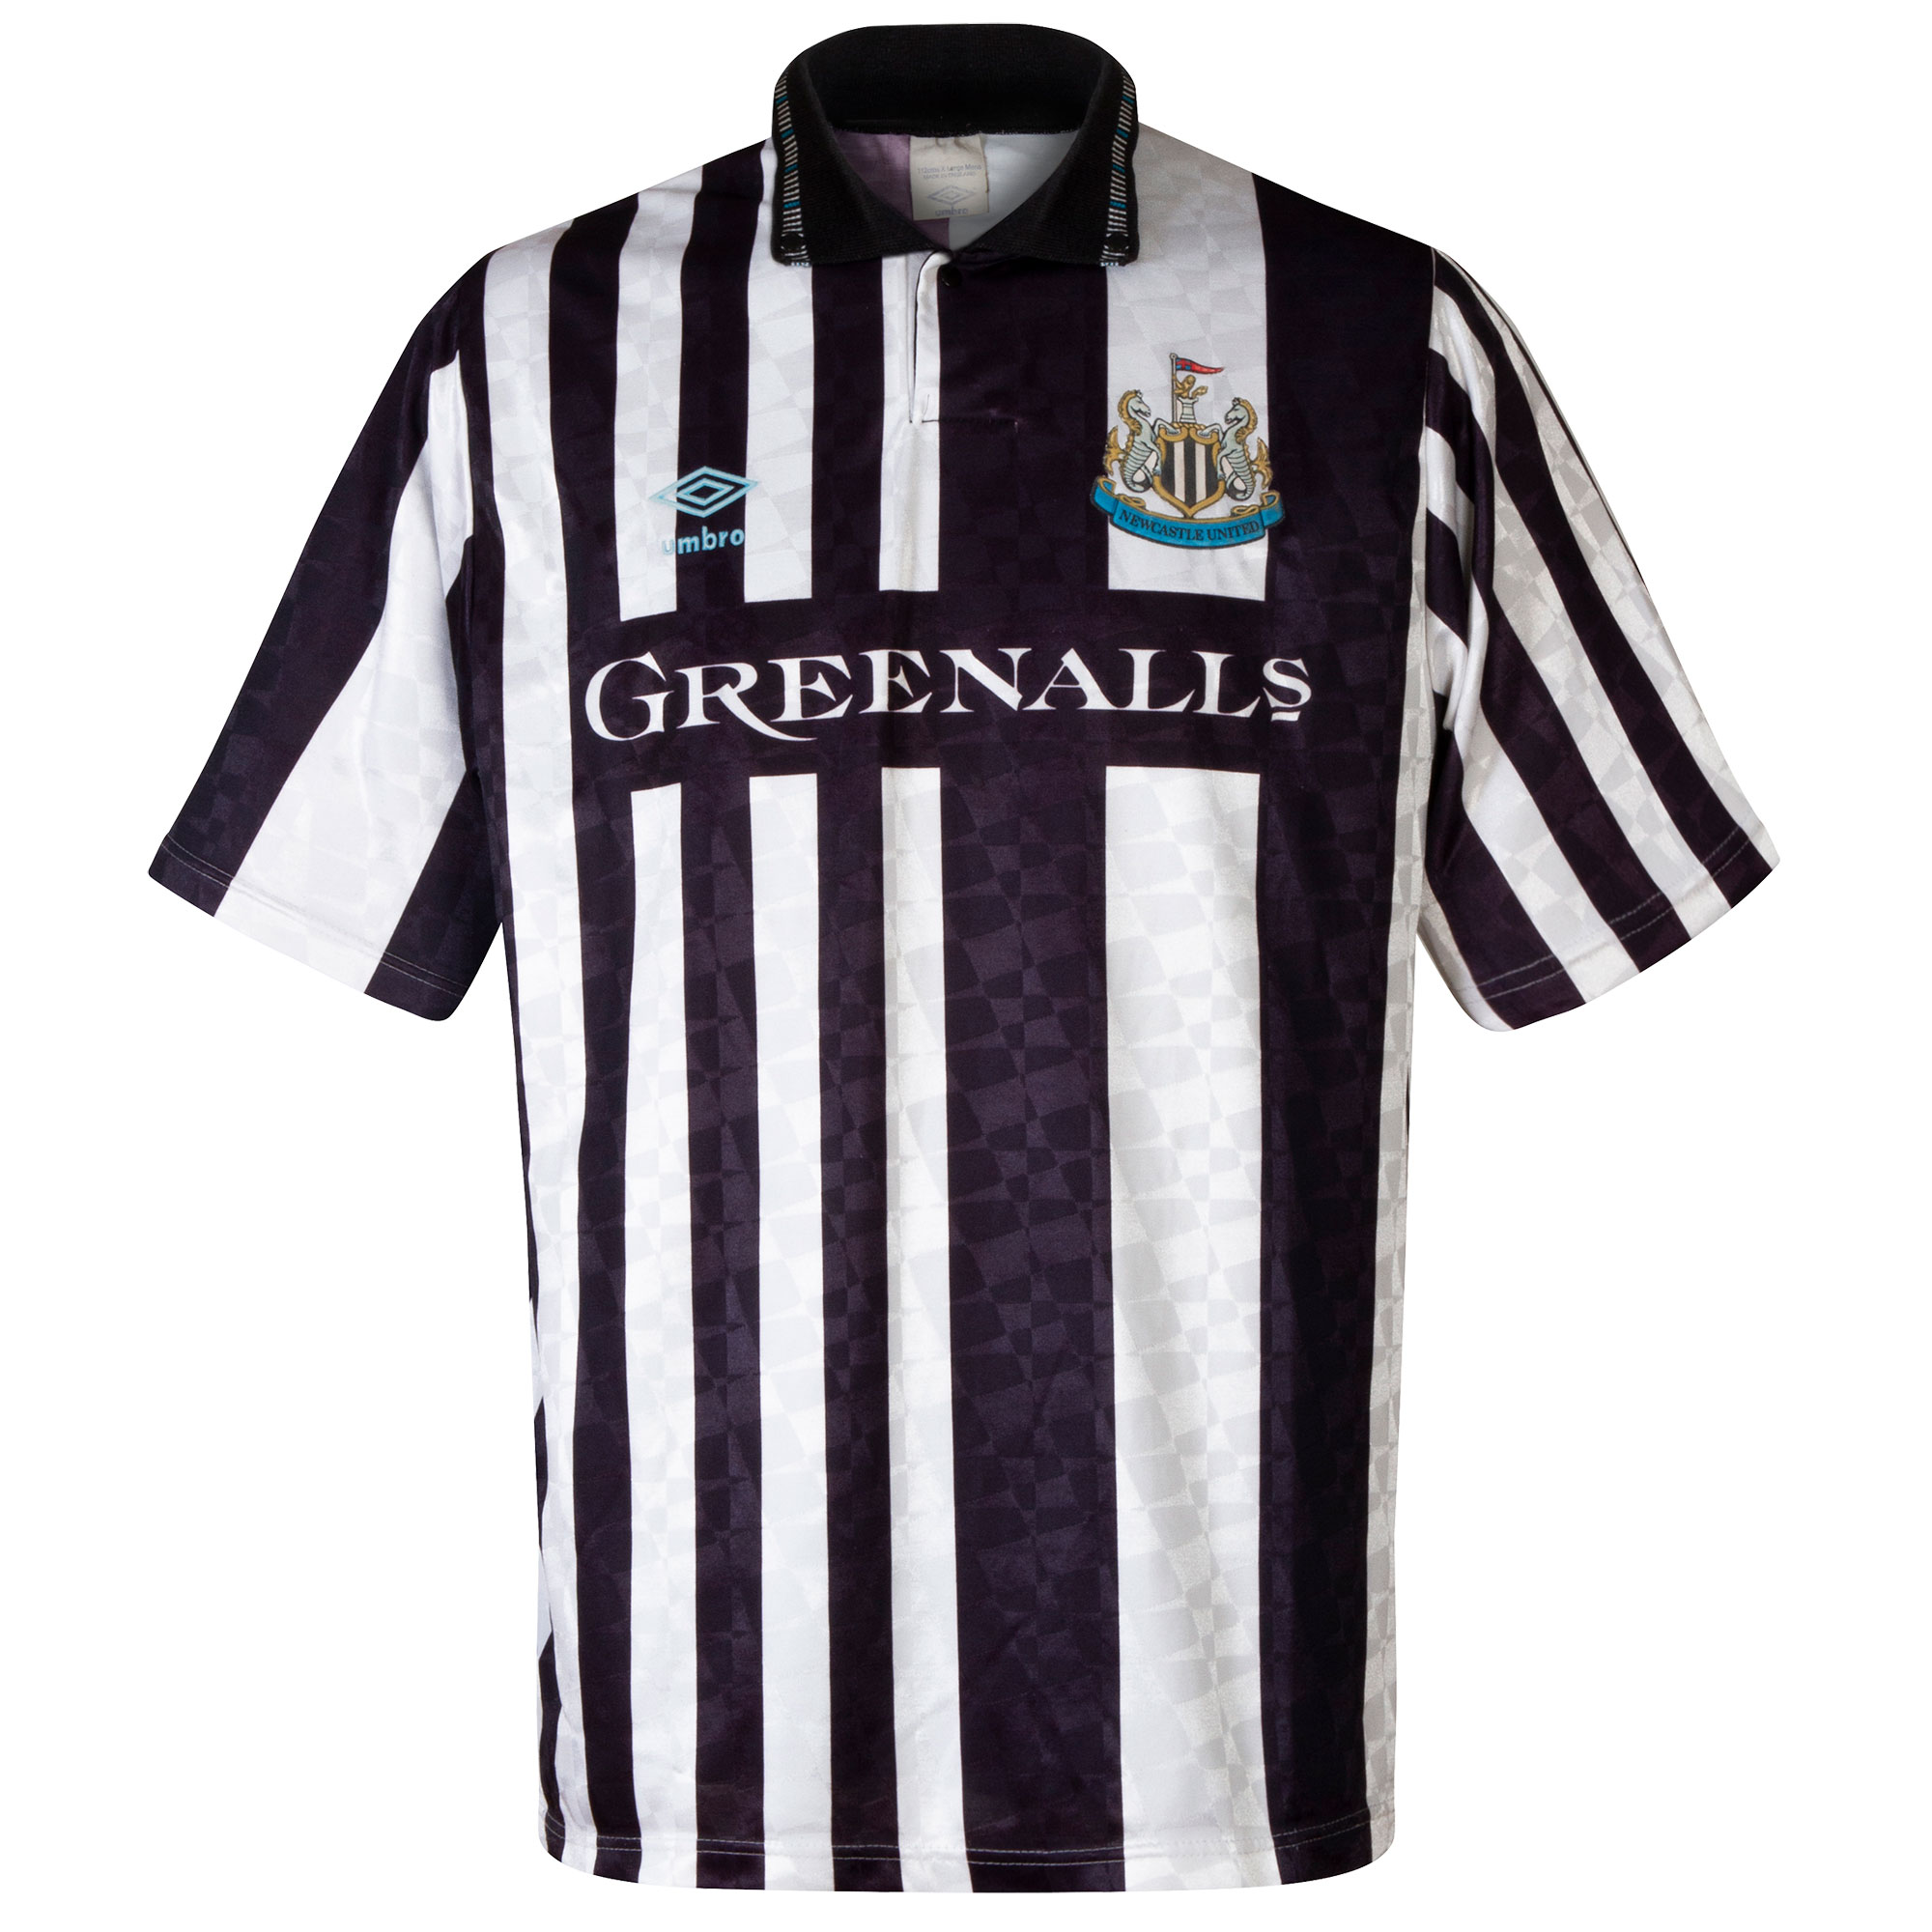 Umbro Newcastle United 1990-1991 Home Shirt - USED Condition (Good) - Size